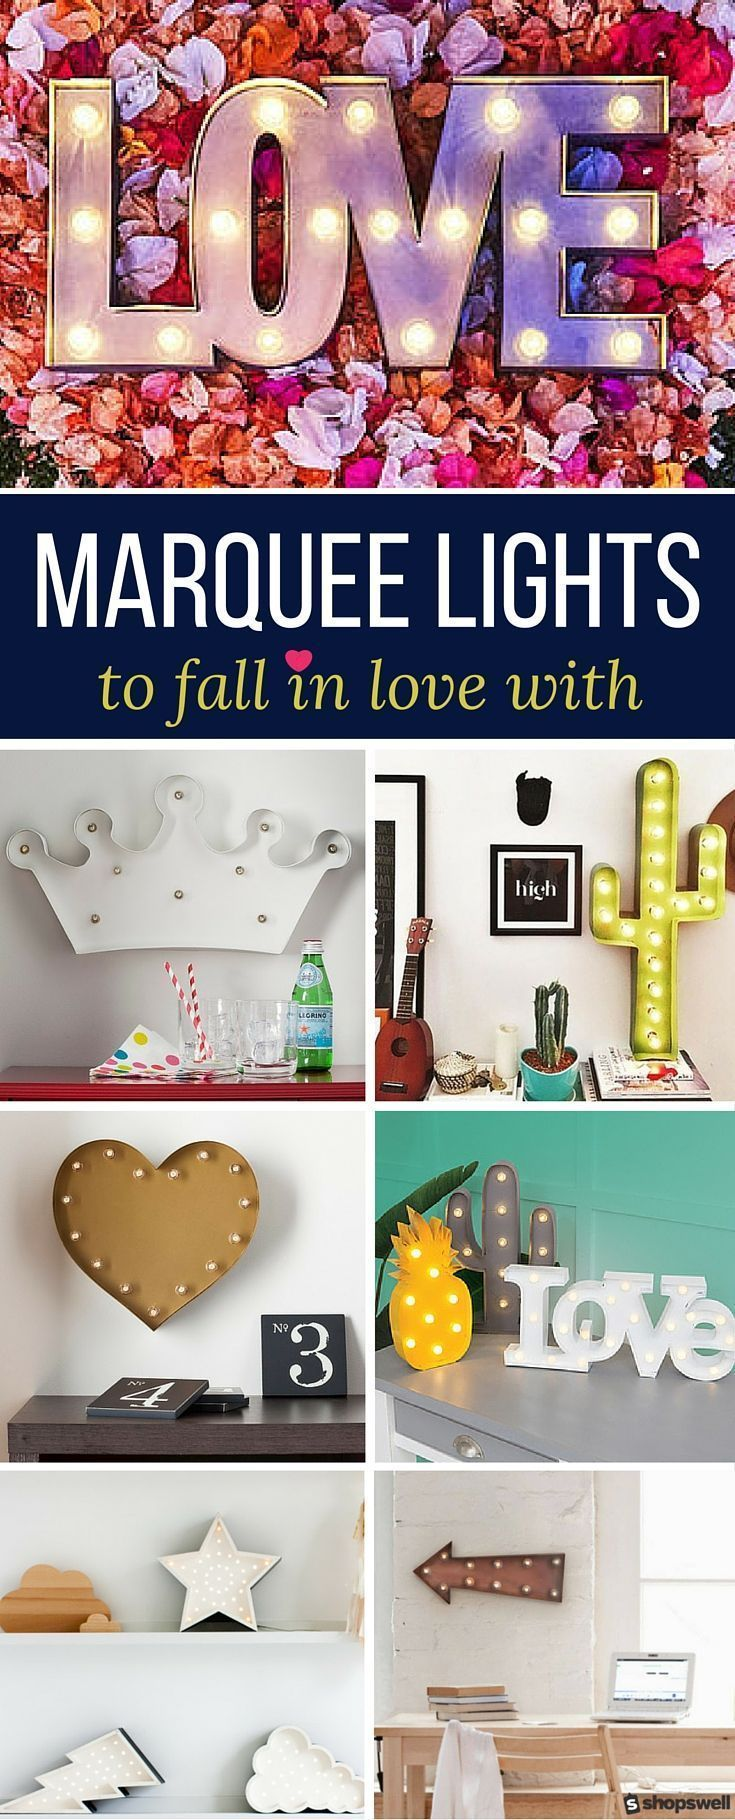 Light It Up: 15 Marquee Lights To Fall In Love With